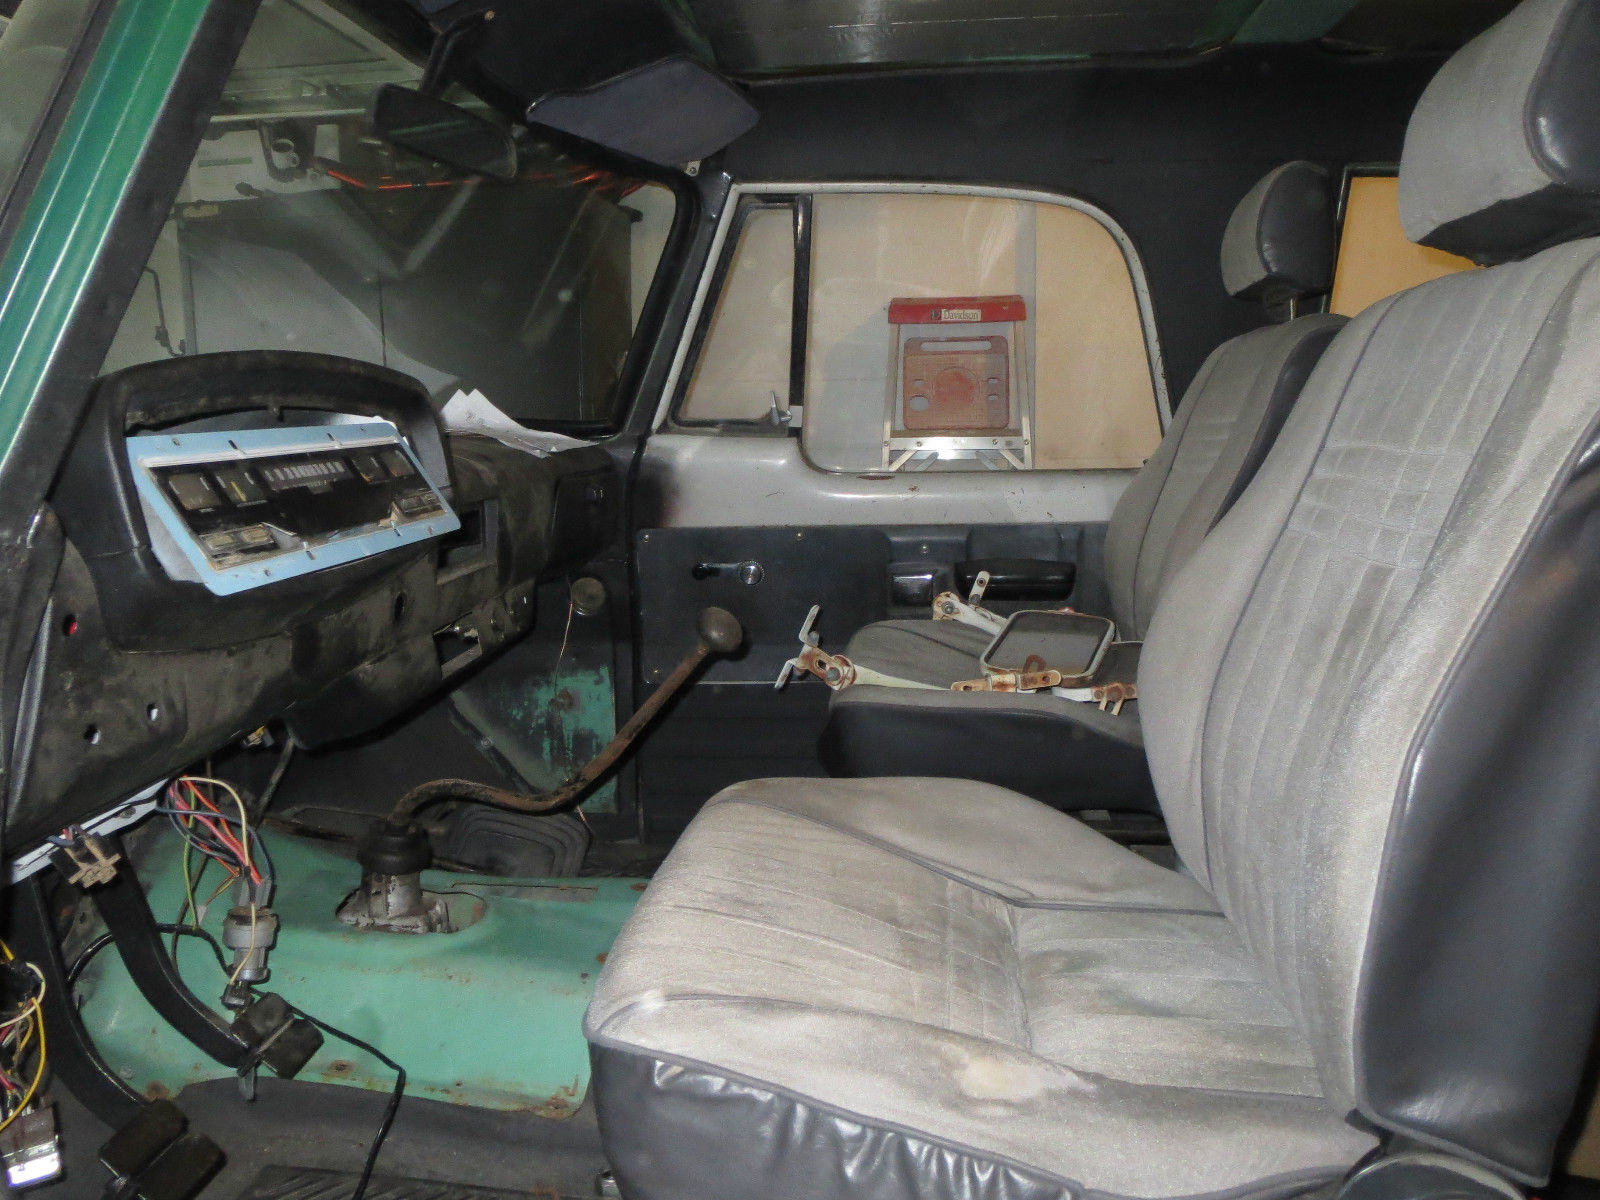 1968 Dodge Power Wagon Crew Cab Pickup For Sale In Yelm Washington Chevrolet Other Pickups W200